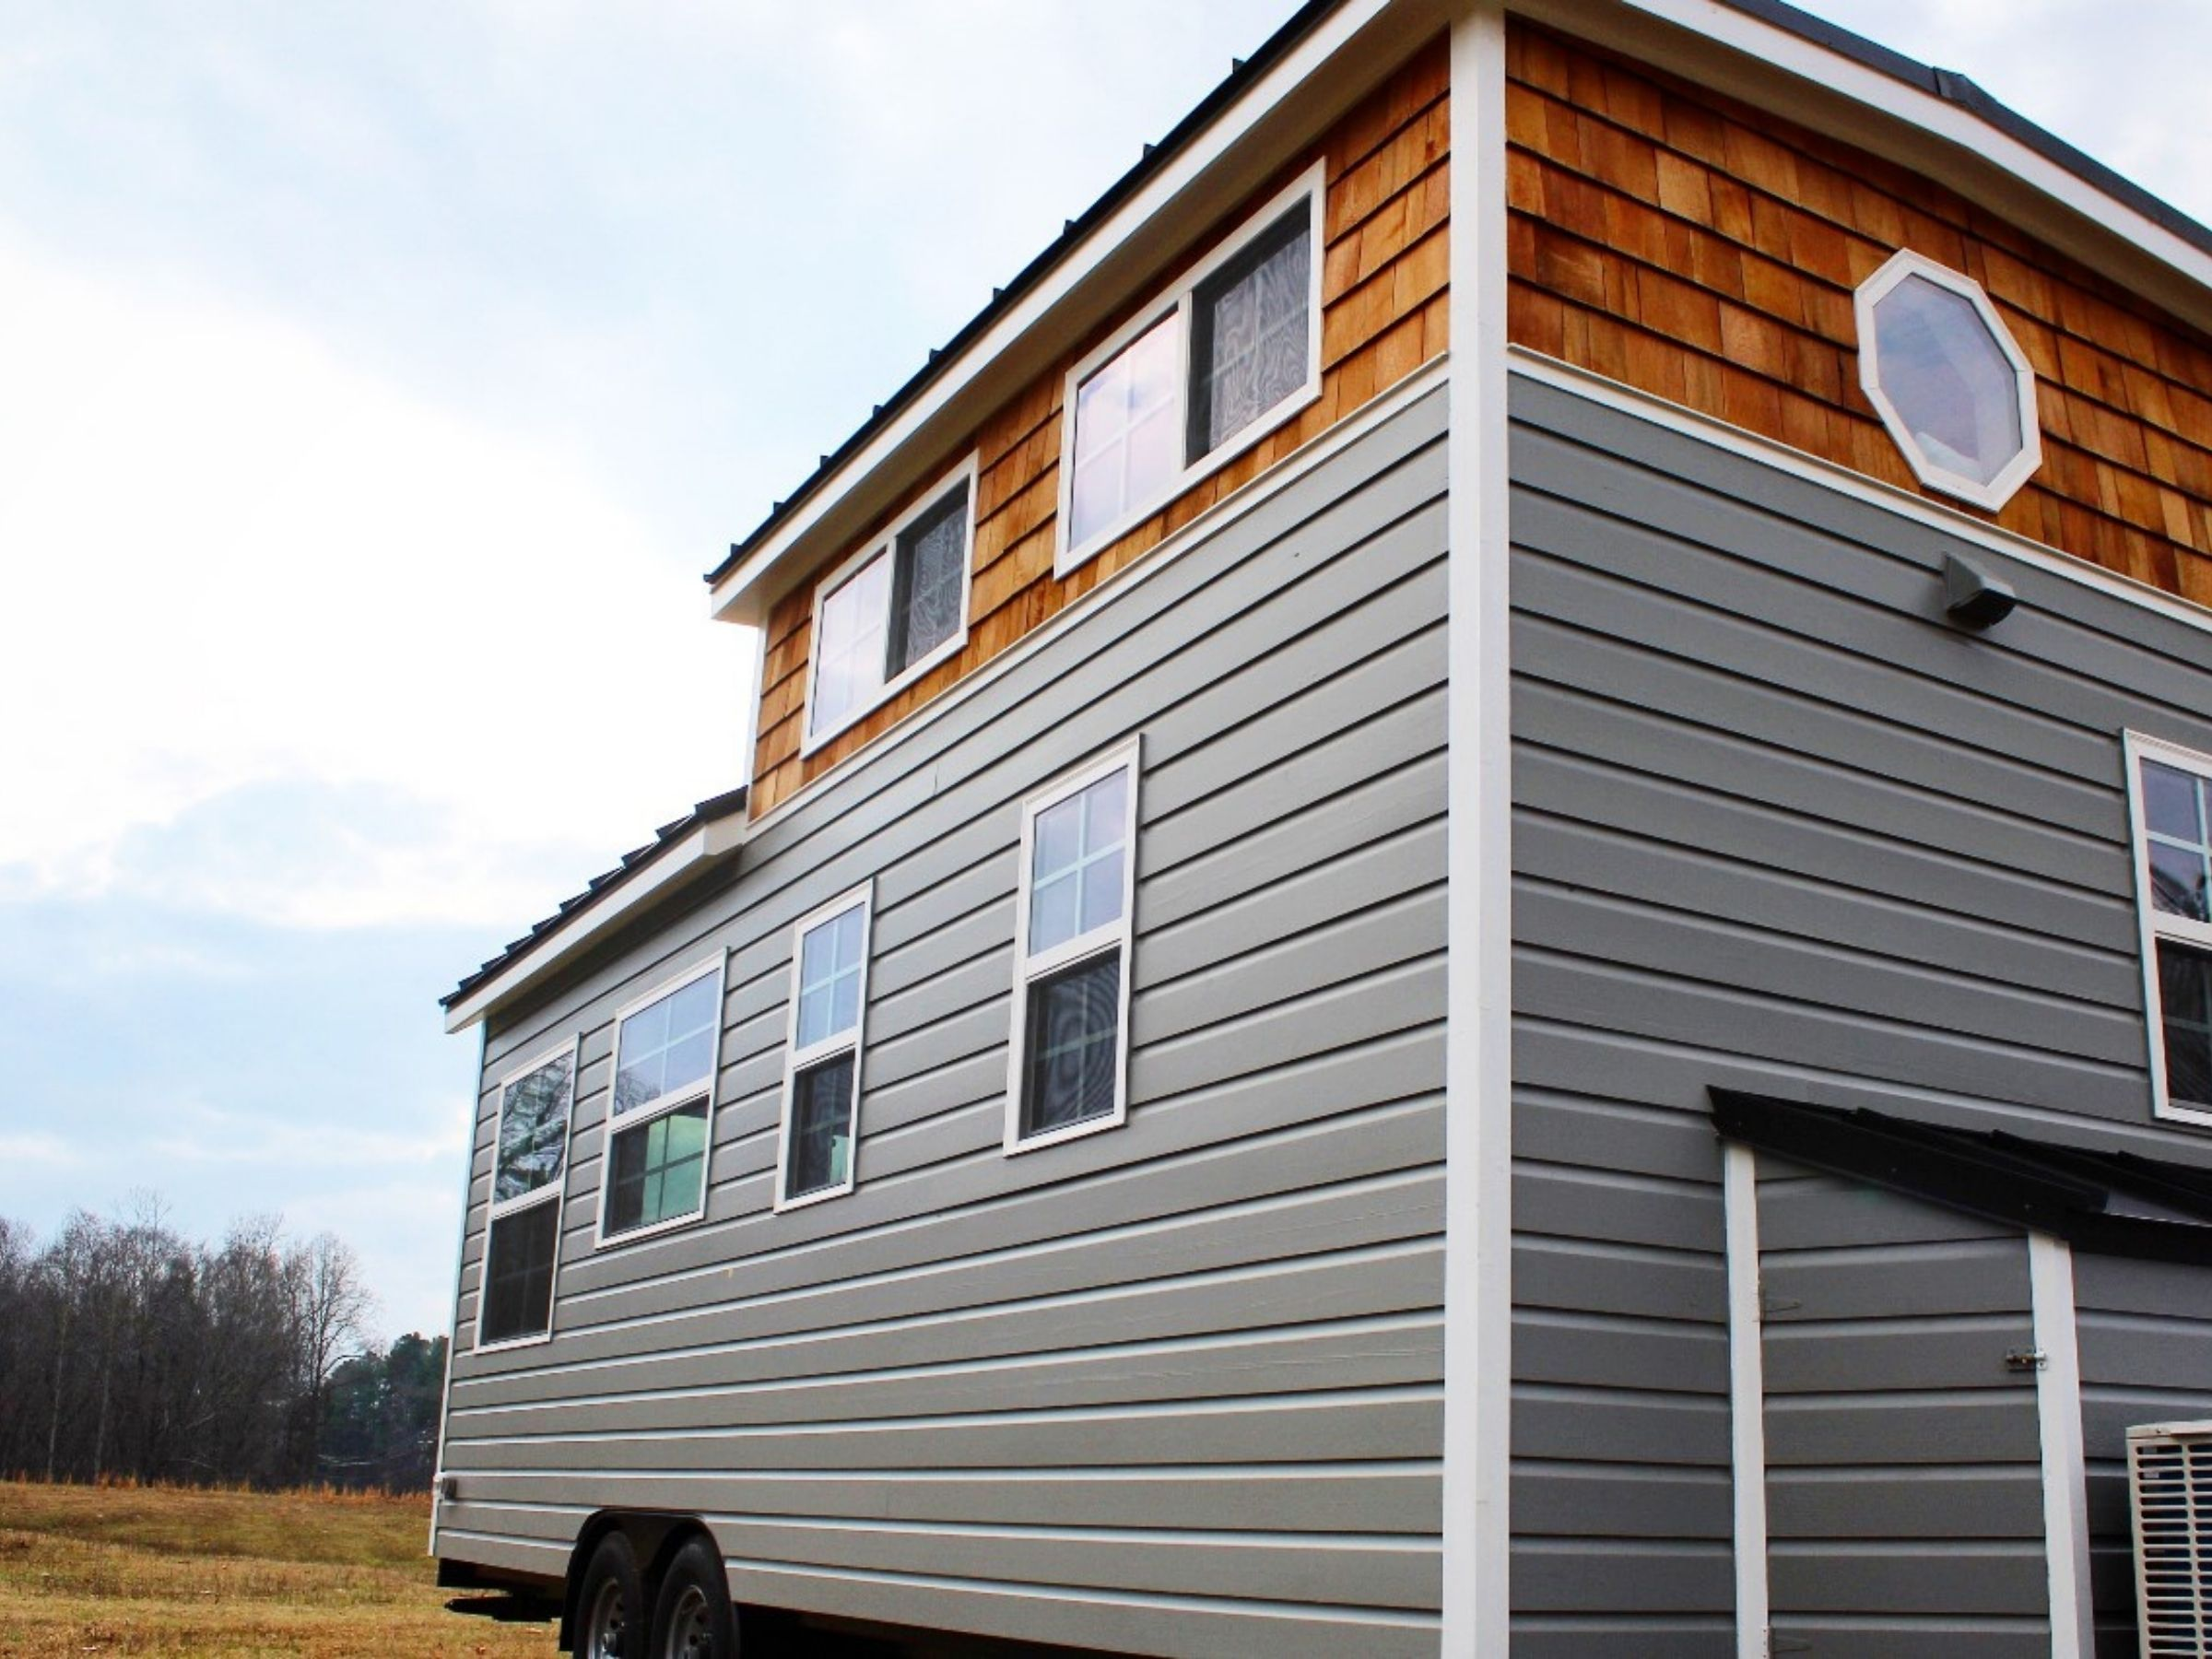 Side of tiny home onw heels with gray siding and multiple windows